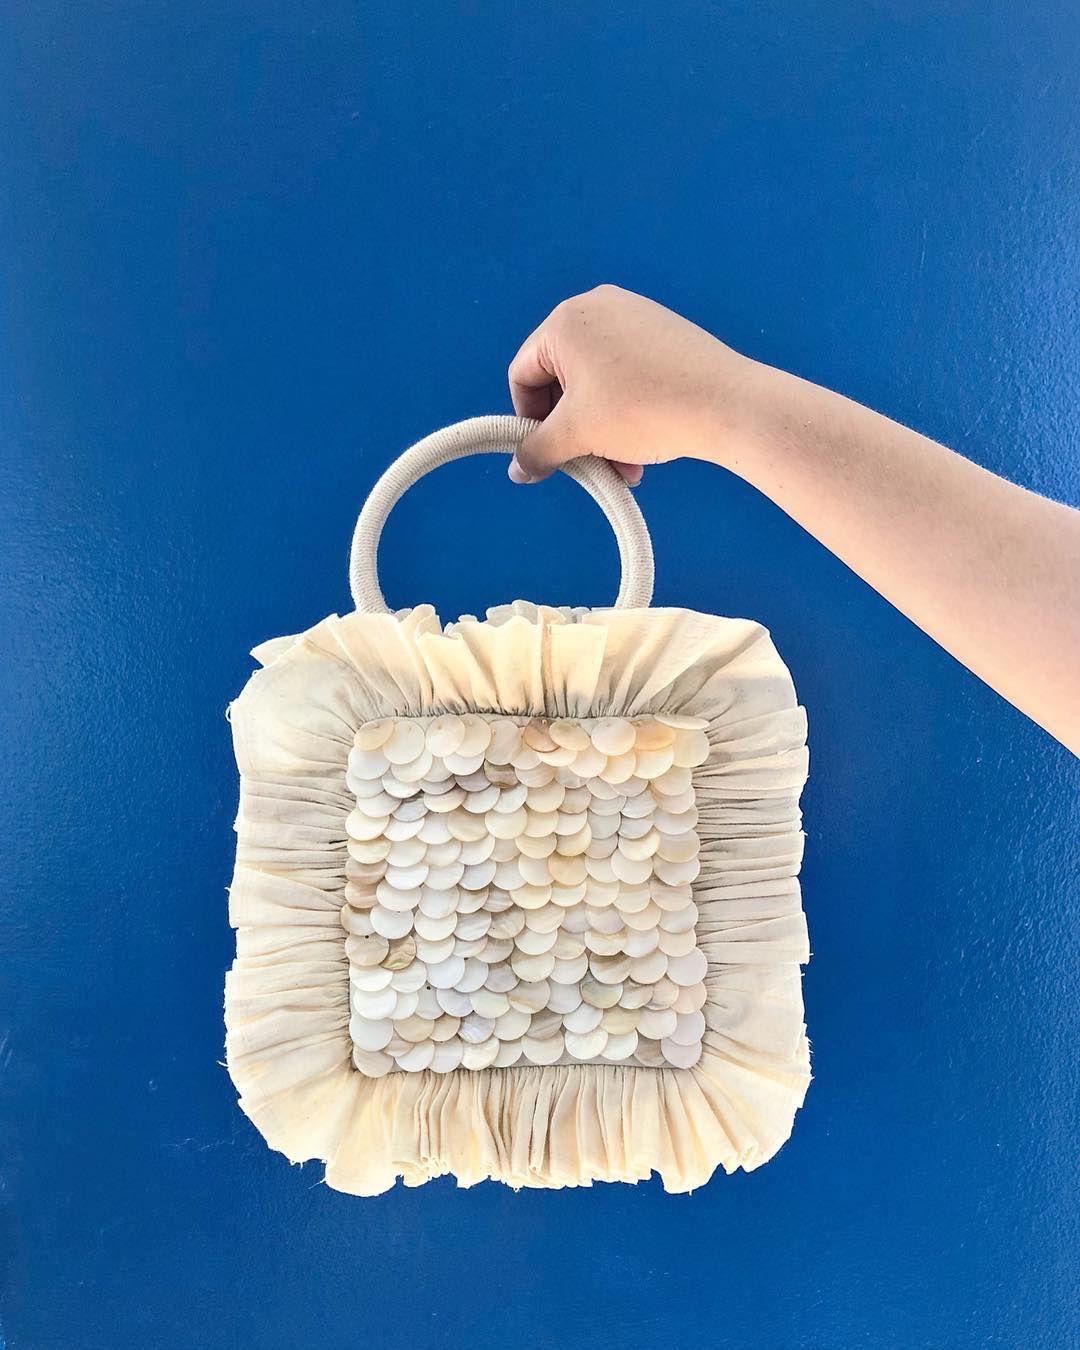 cce209e414ce Pin by Nikki Santos-Ocampo on Handbags of the gods in 2019